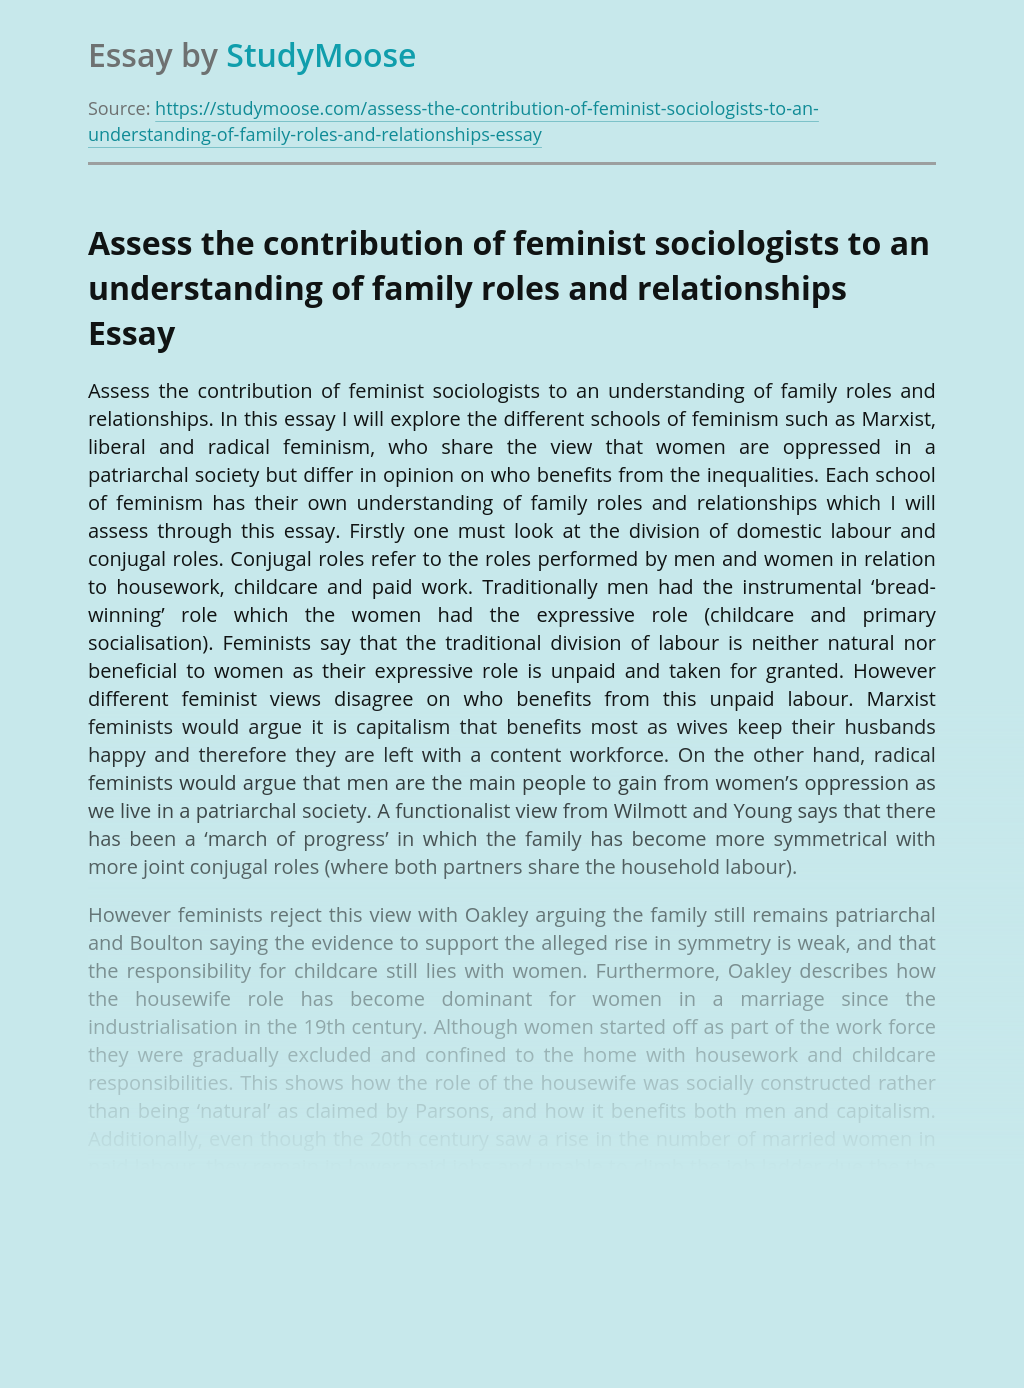 Assess the contribution of feminist sociologists to an understanding of family roles and relationships